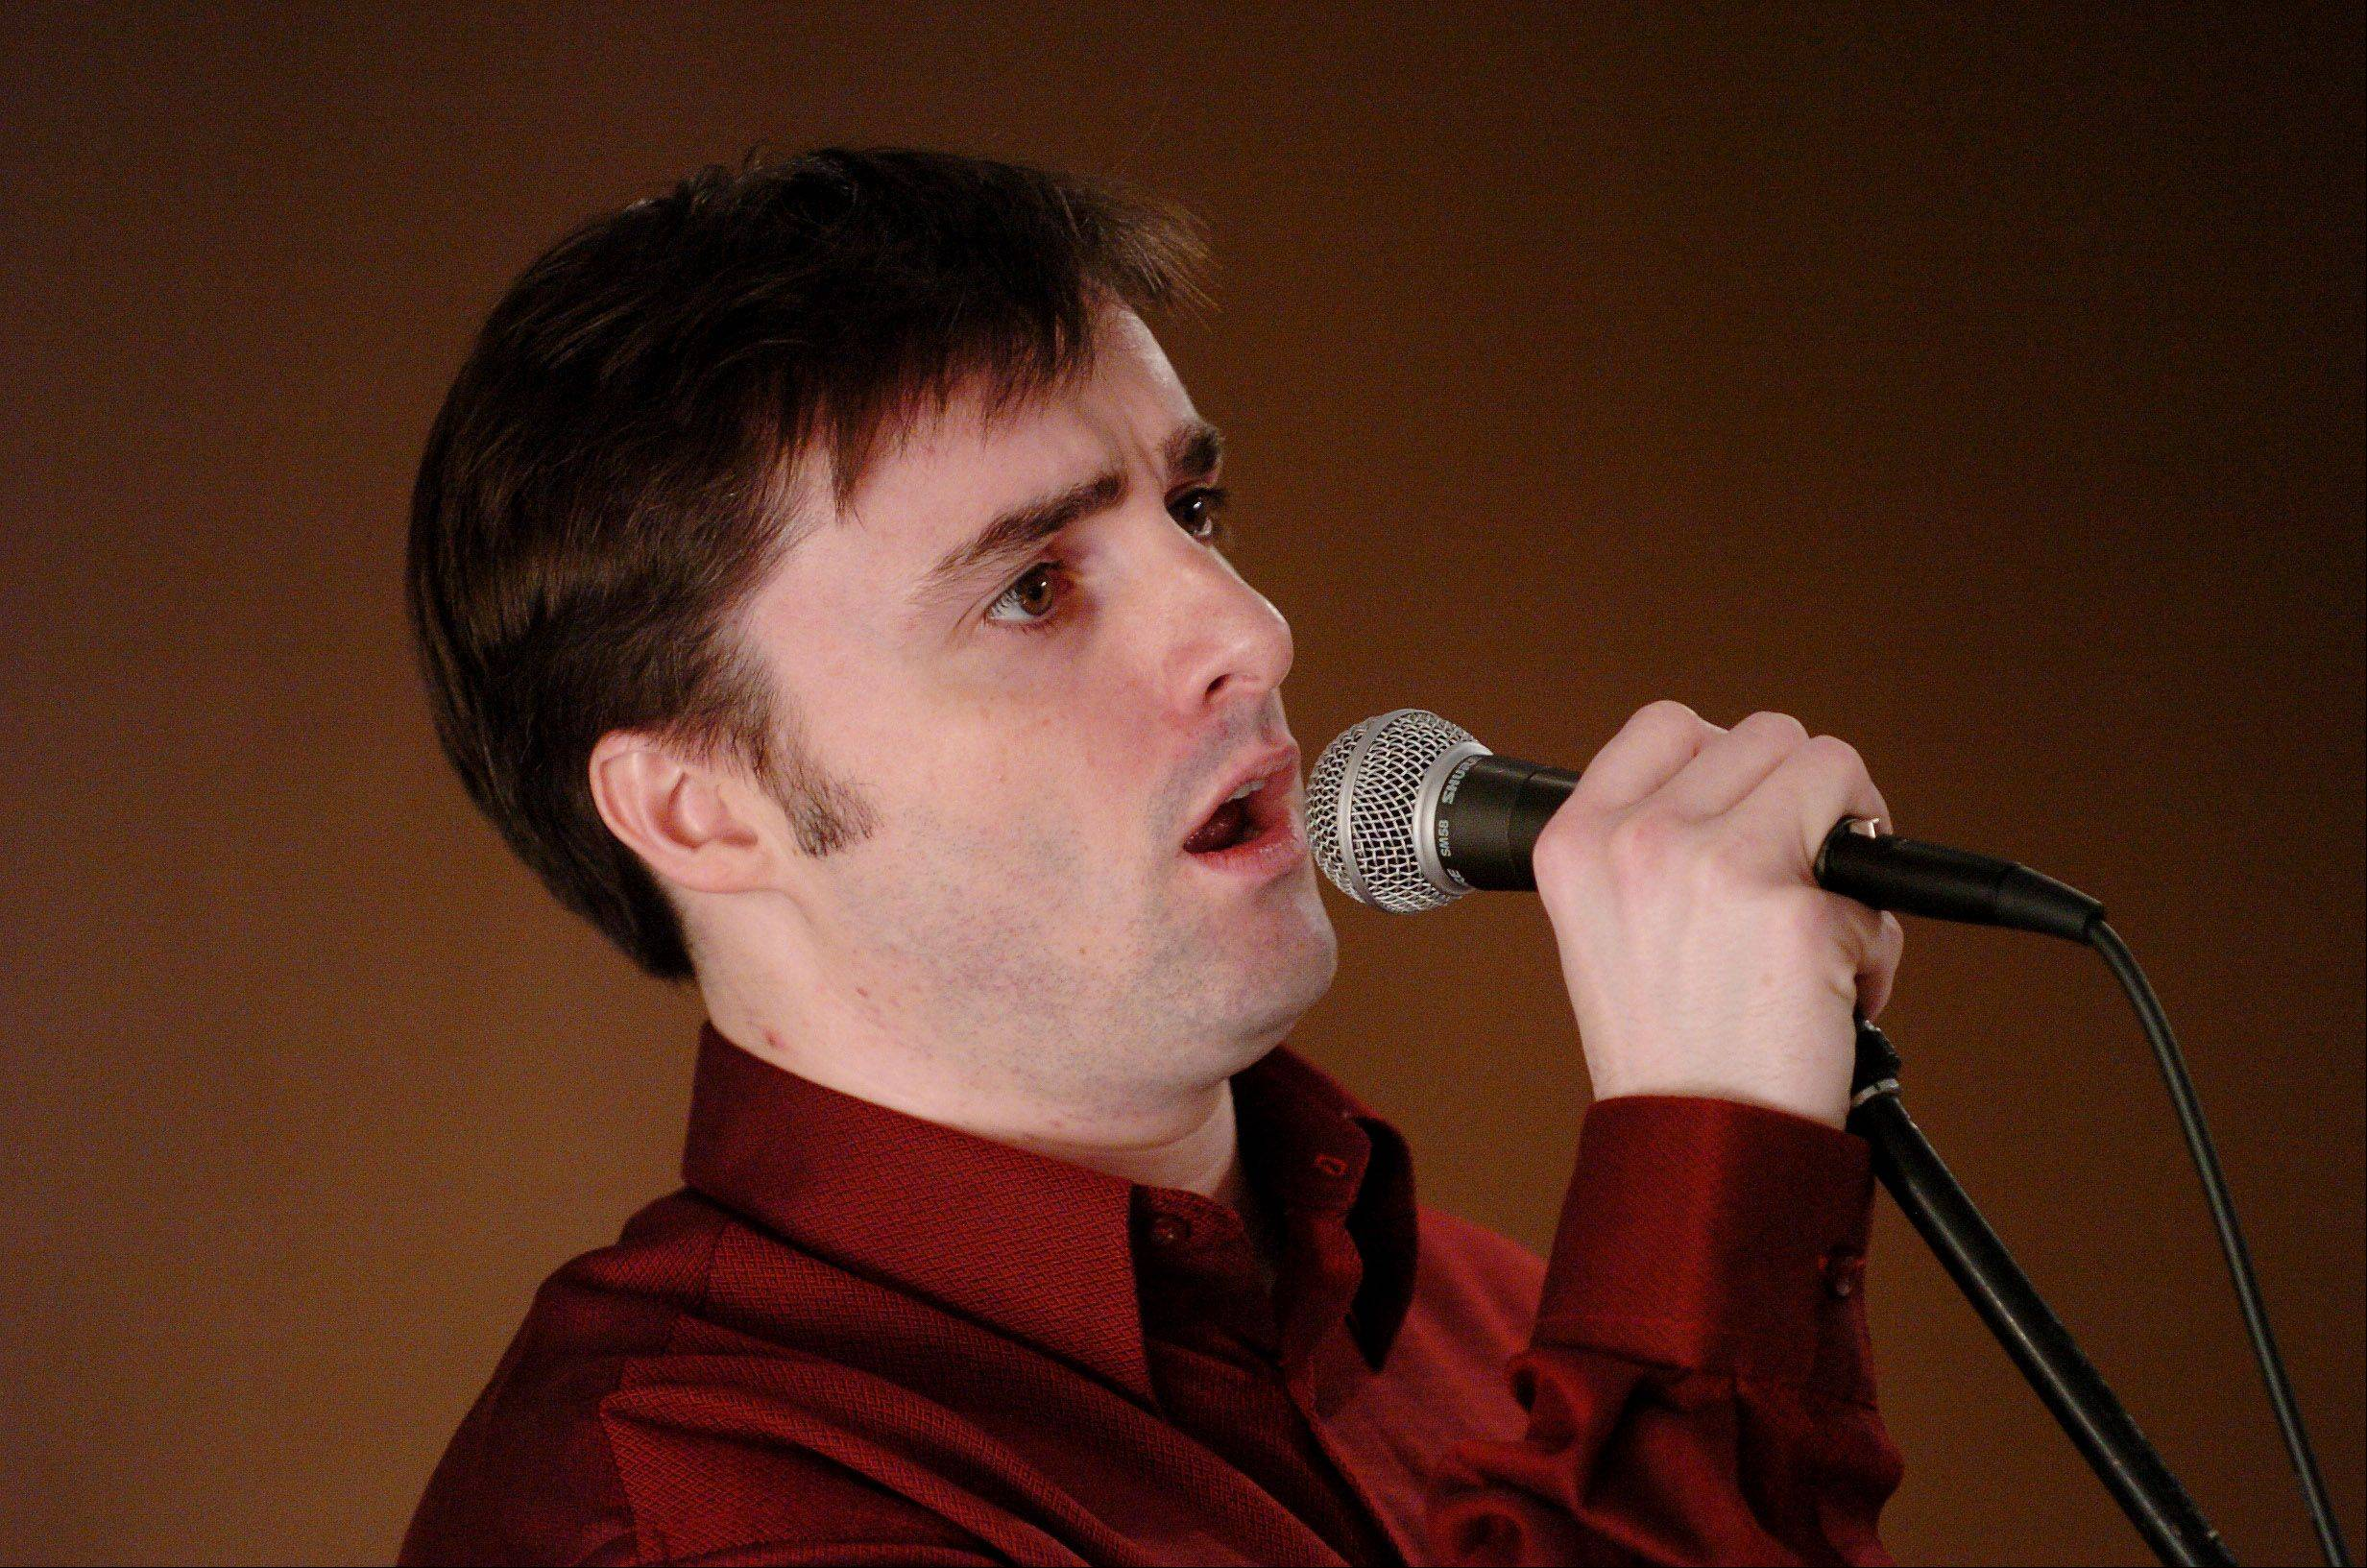 Gavin Coyle is set to perform at College of DuPage's McAninch Arts Center in Glen Ellyn.